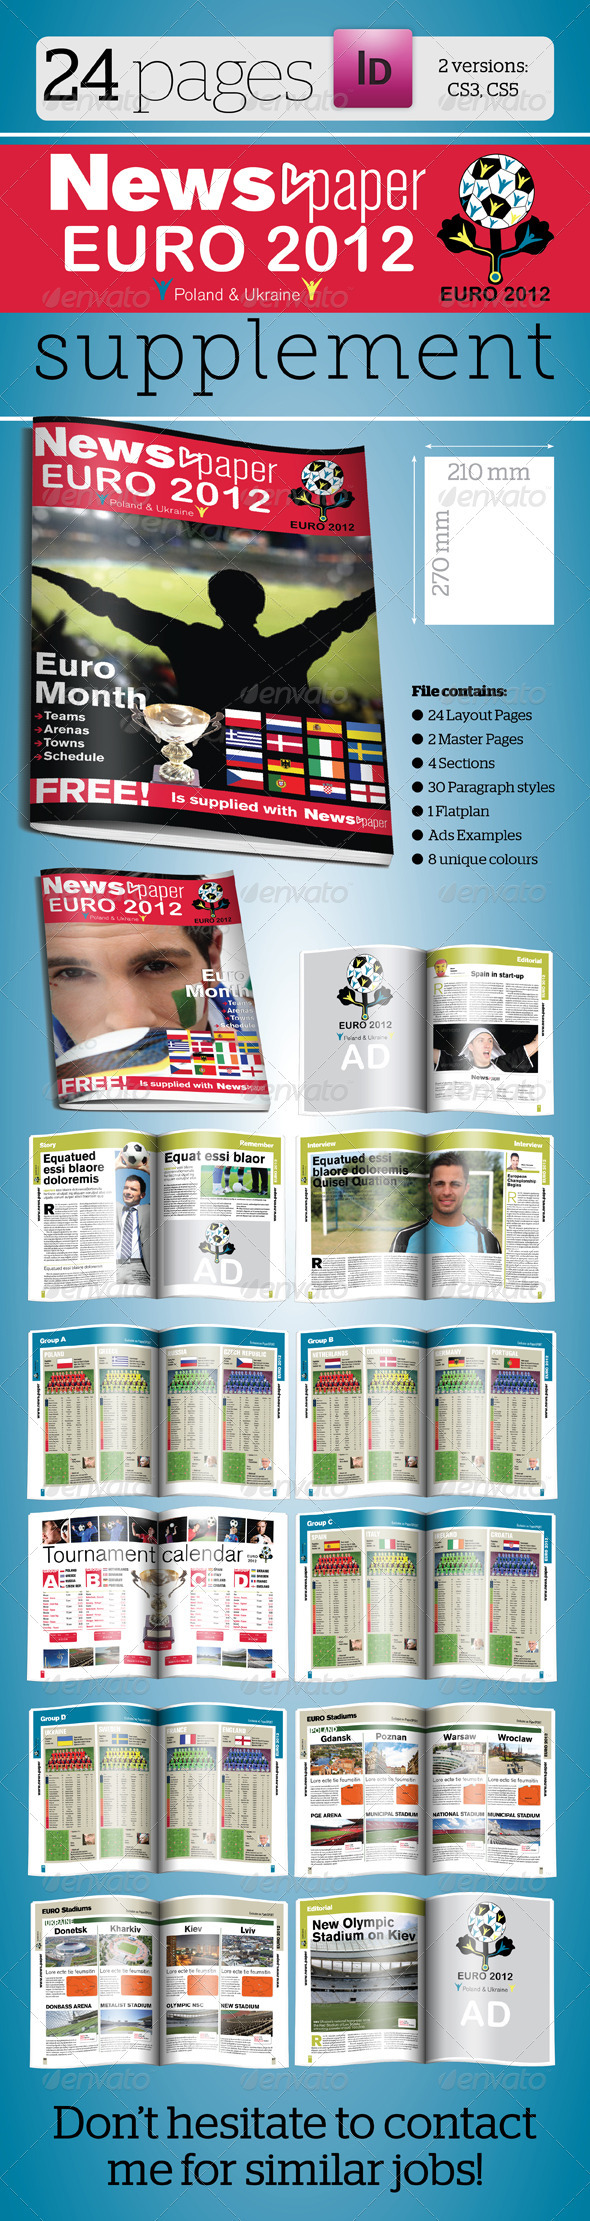 24 Pages Euro 2012 Supplement For News.paper - Newsletters Print Templates